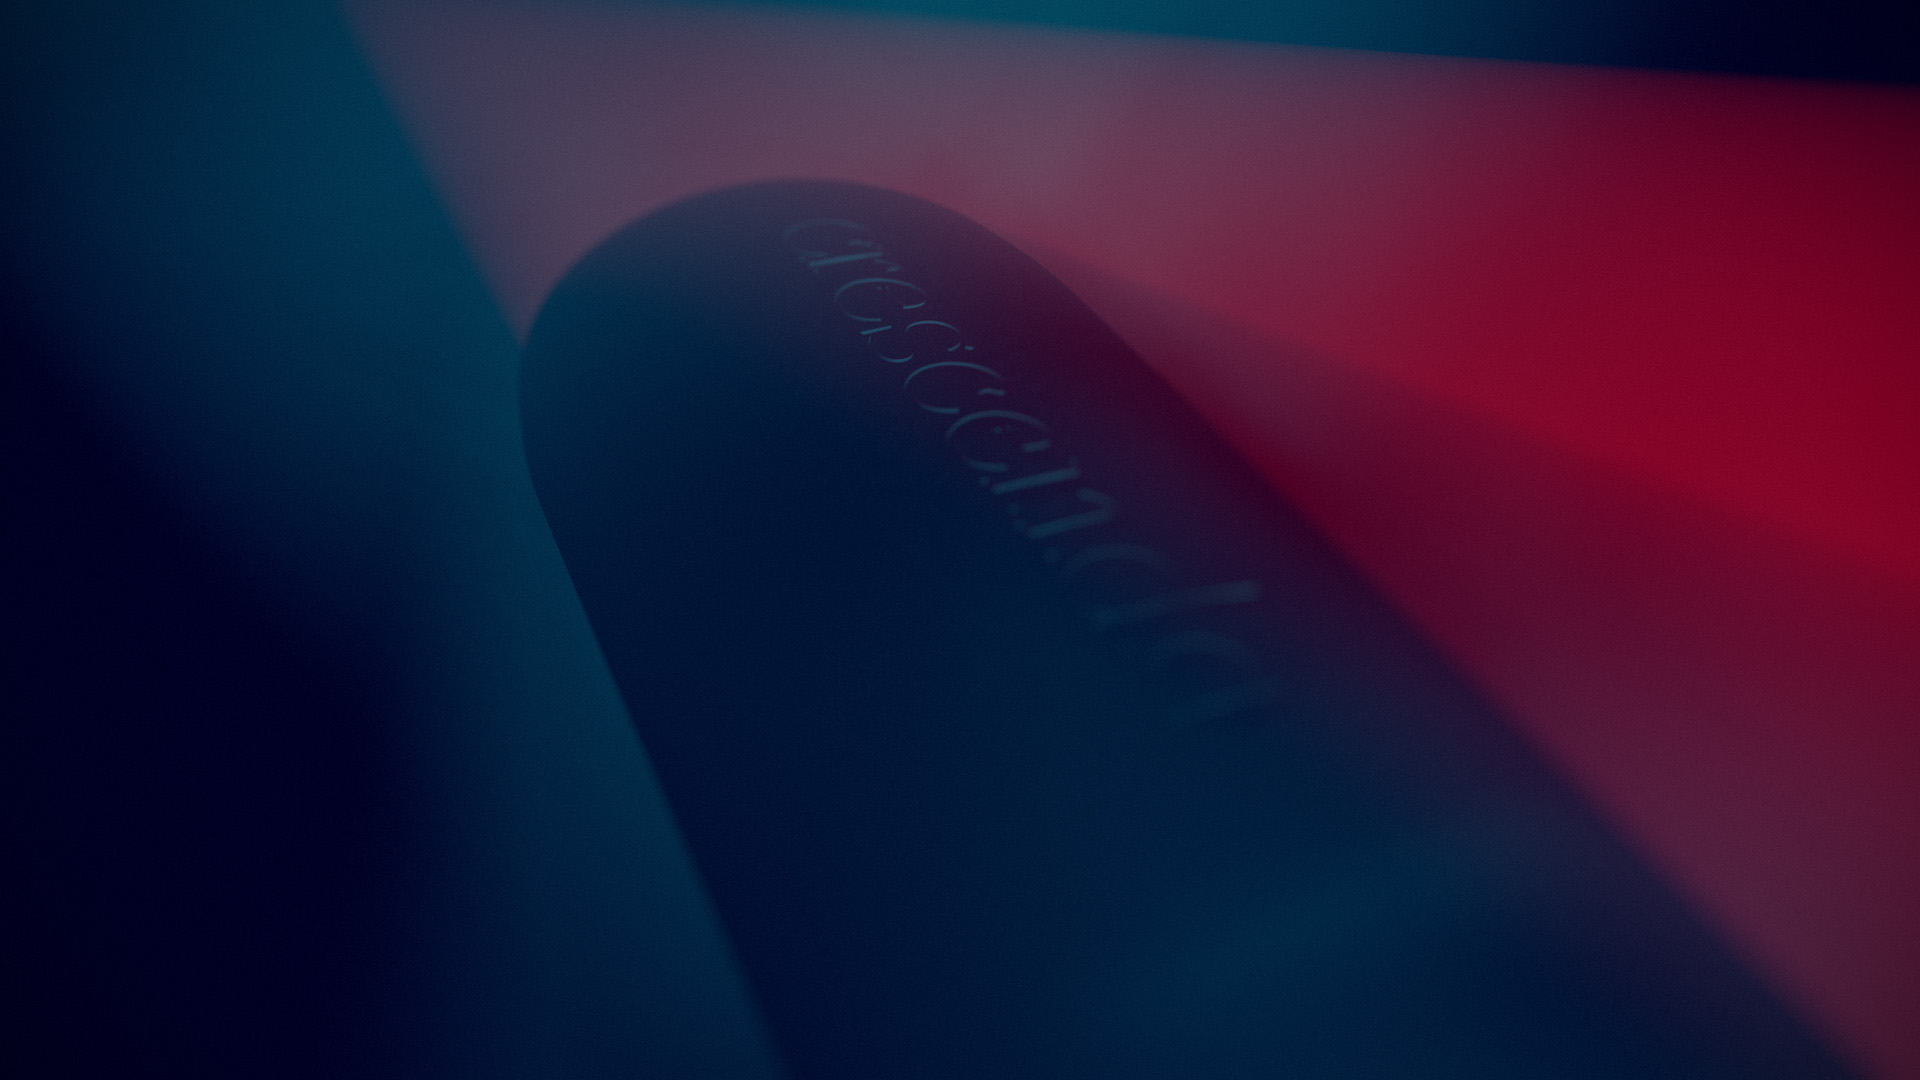 atmospheric motion design scene of the crescendo